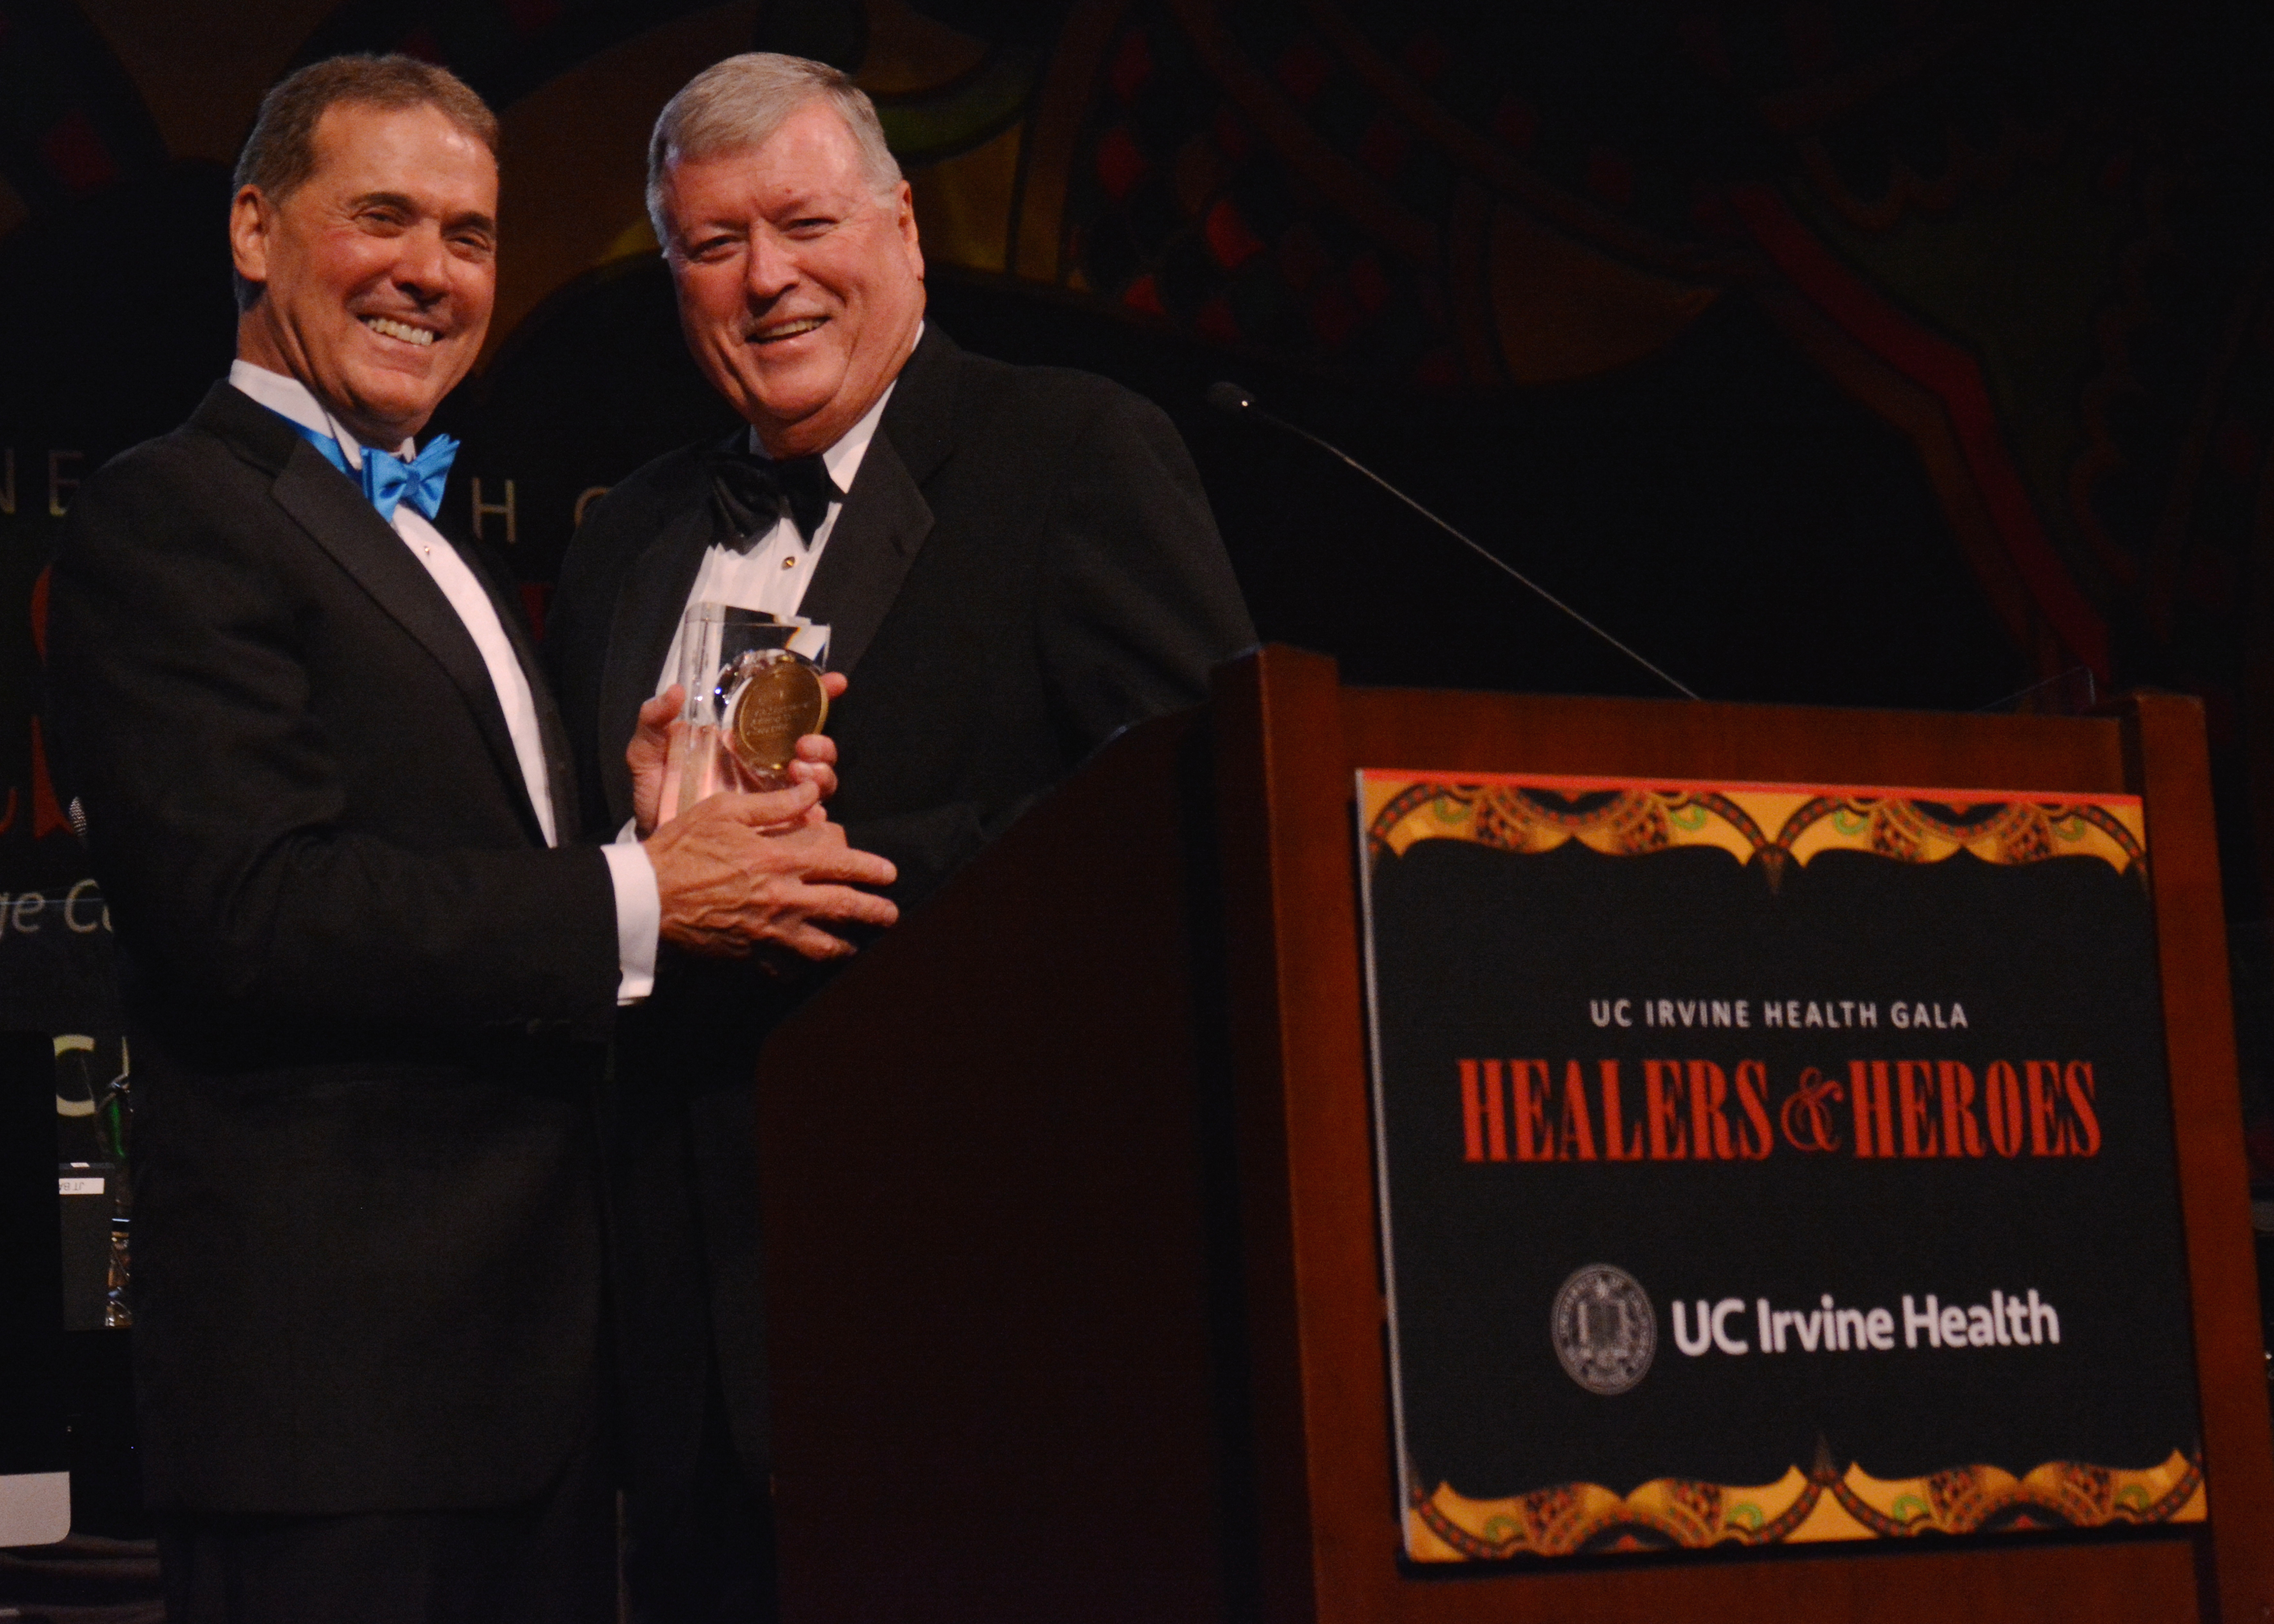 $1.6M in new research funding raised at UC Irvine gala